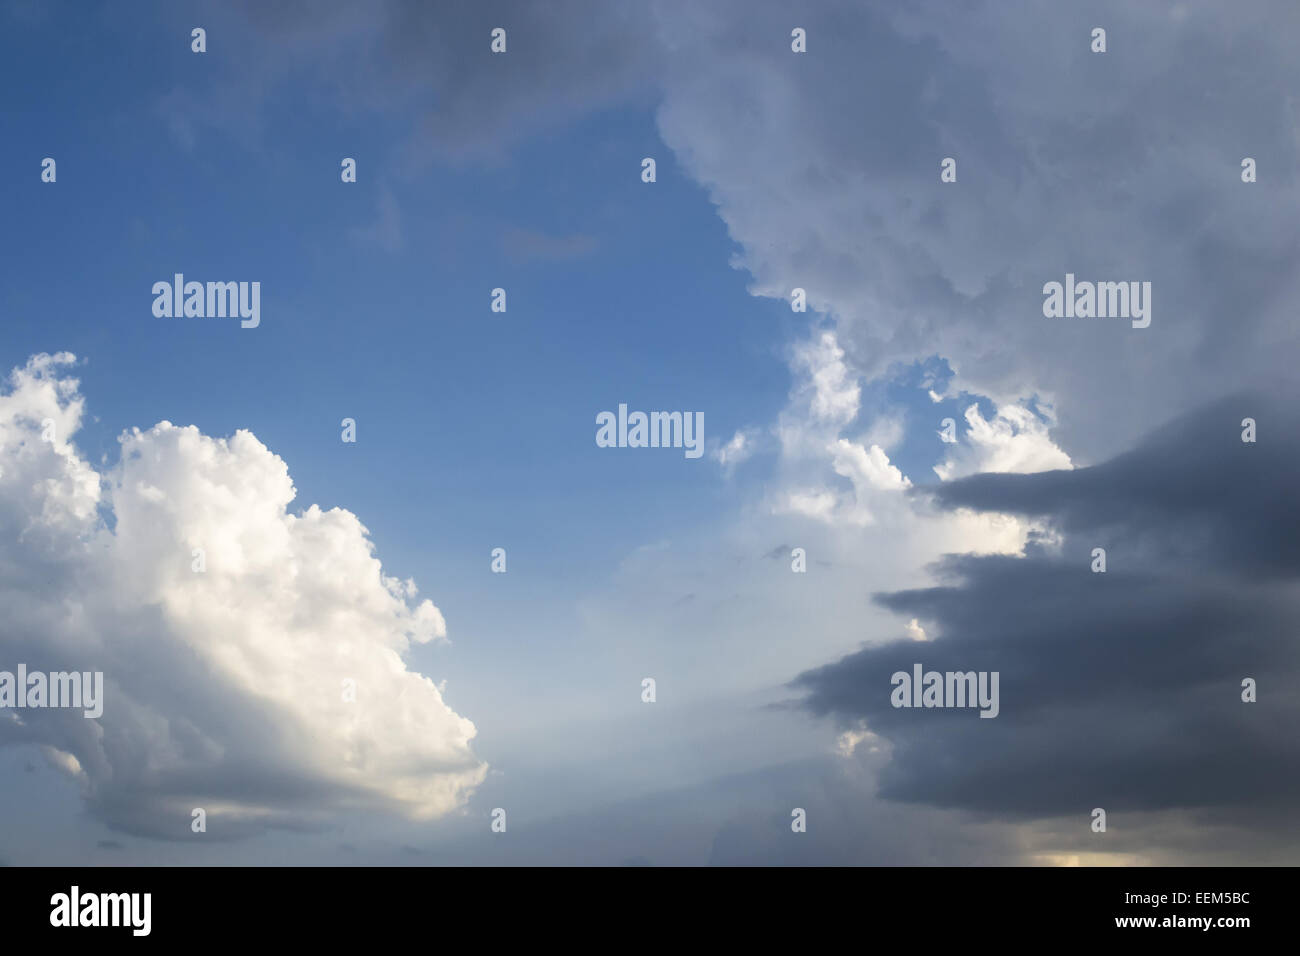 Typical storm clouds gathering fast and forecasting rain and thunderstorm in hot summer season - Stock Image